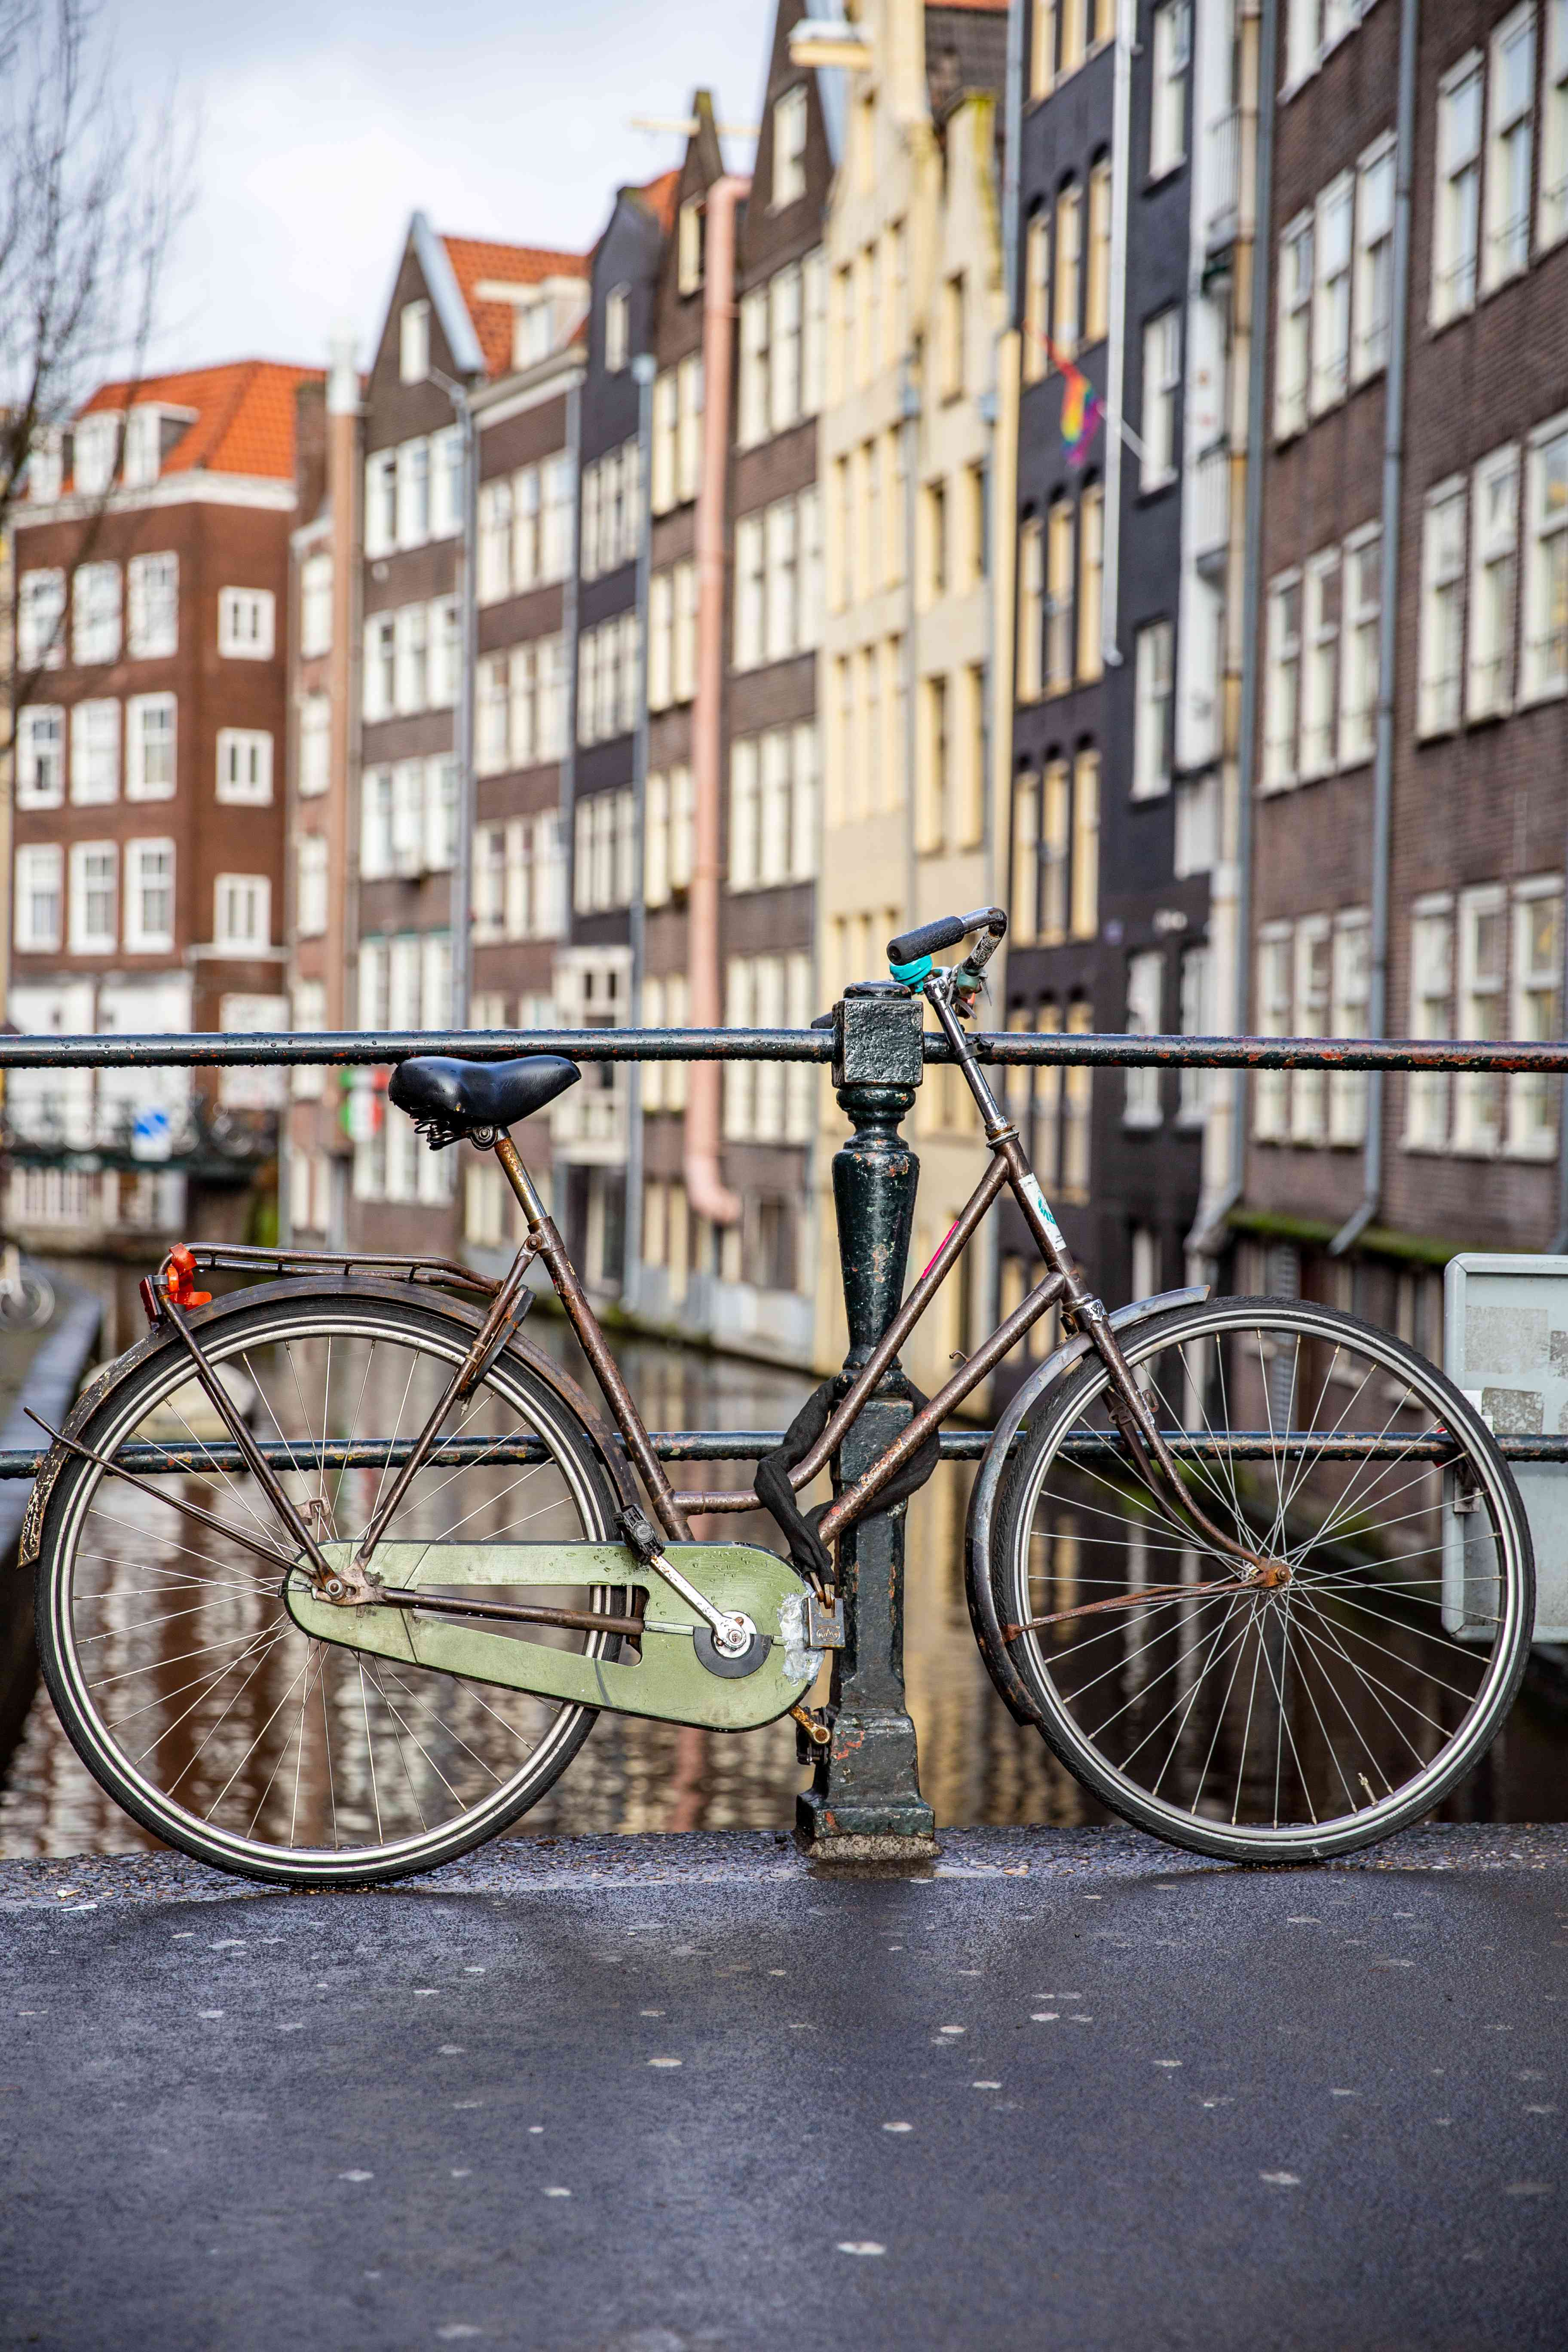 A bike by a canal in Amsterdam